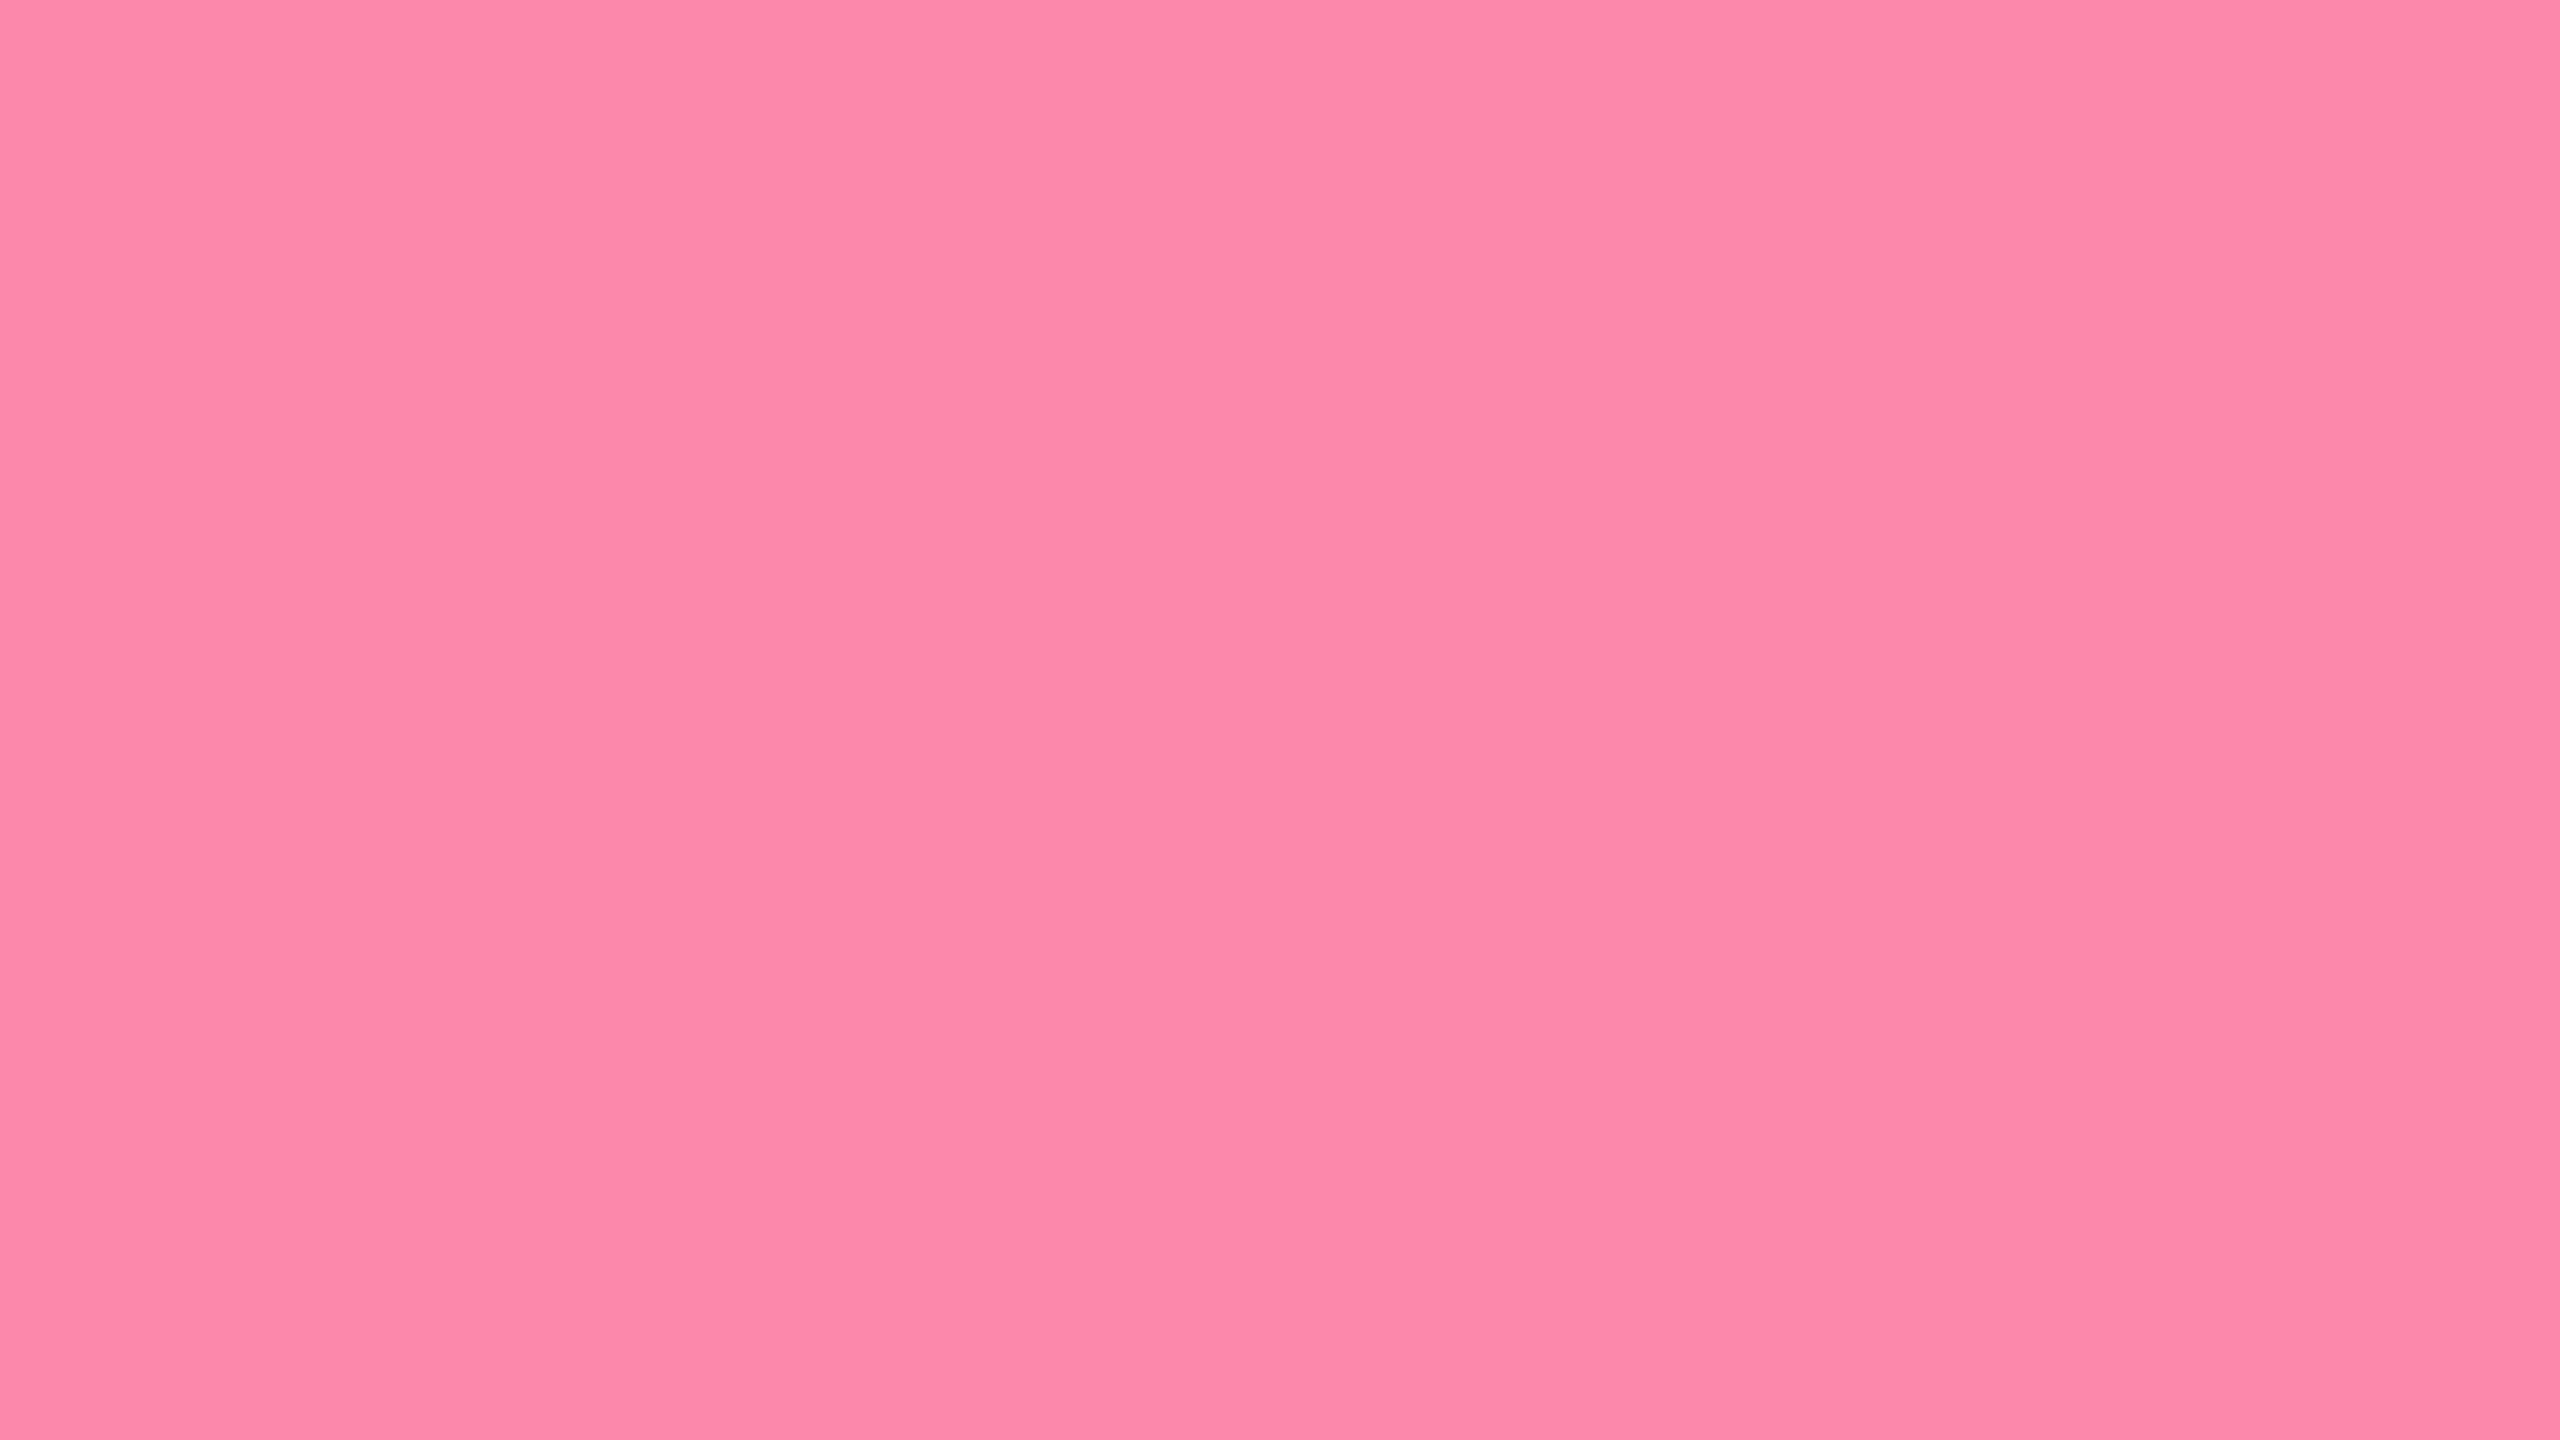 2560x1440 Tickle Me Pink Solid Color Background